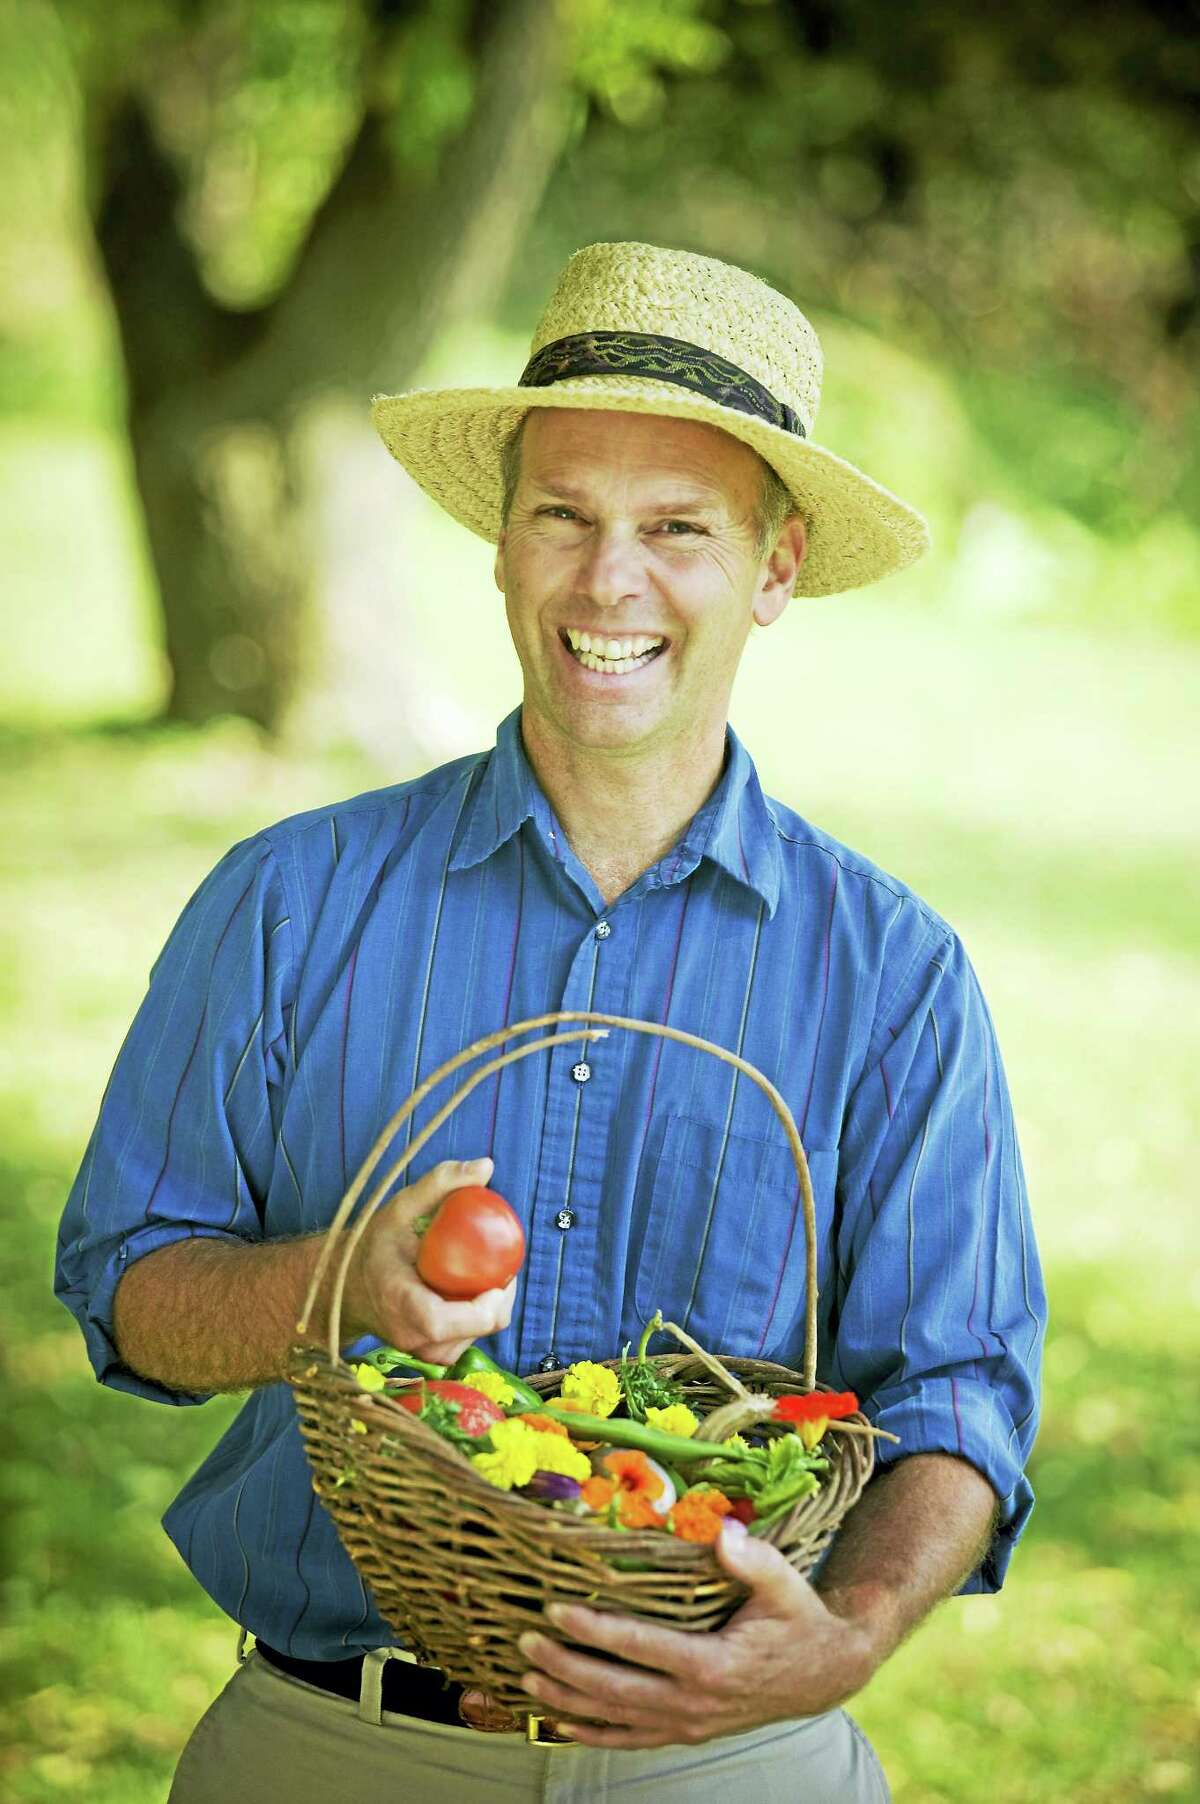 Author and gardening expert Charlie Nardozzi will present 'Foodscaping: A Garden Talk' at the Warner Theatre on May 24.